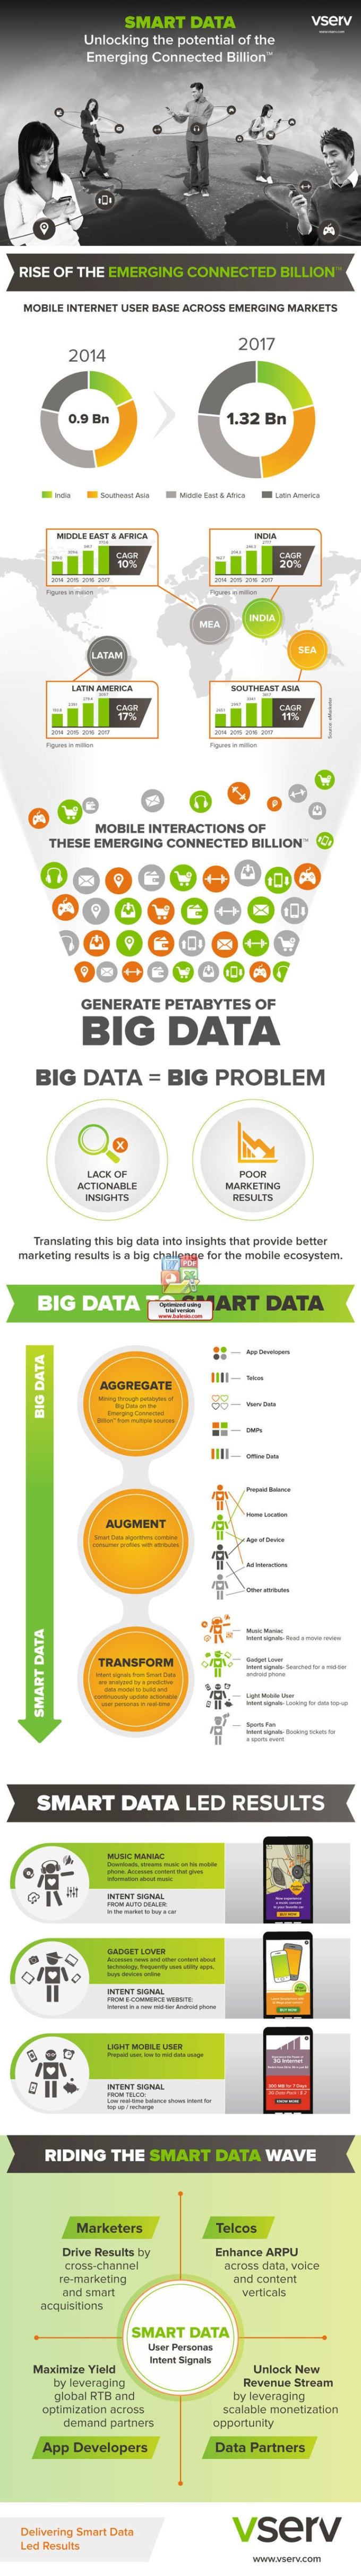 Vserv Smart Data Infographic